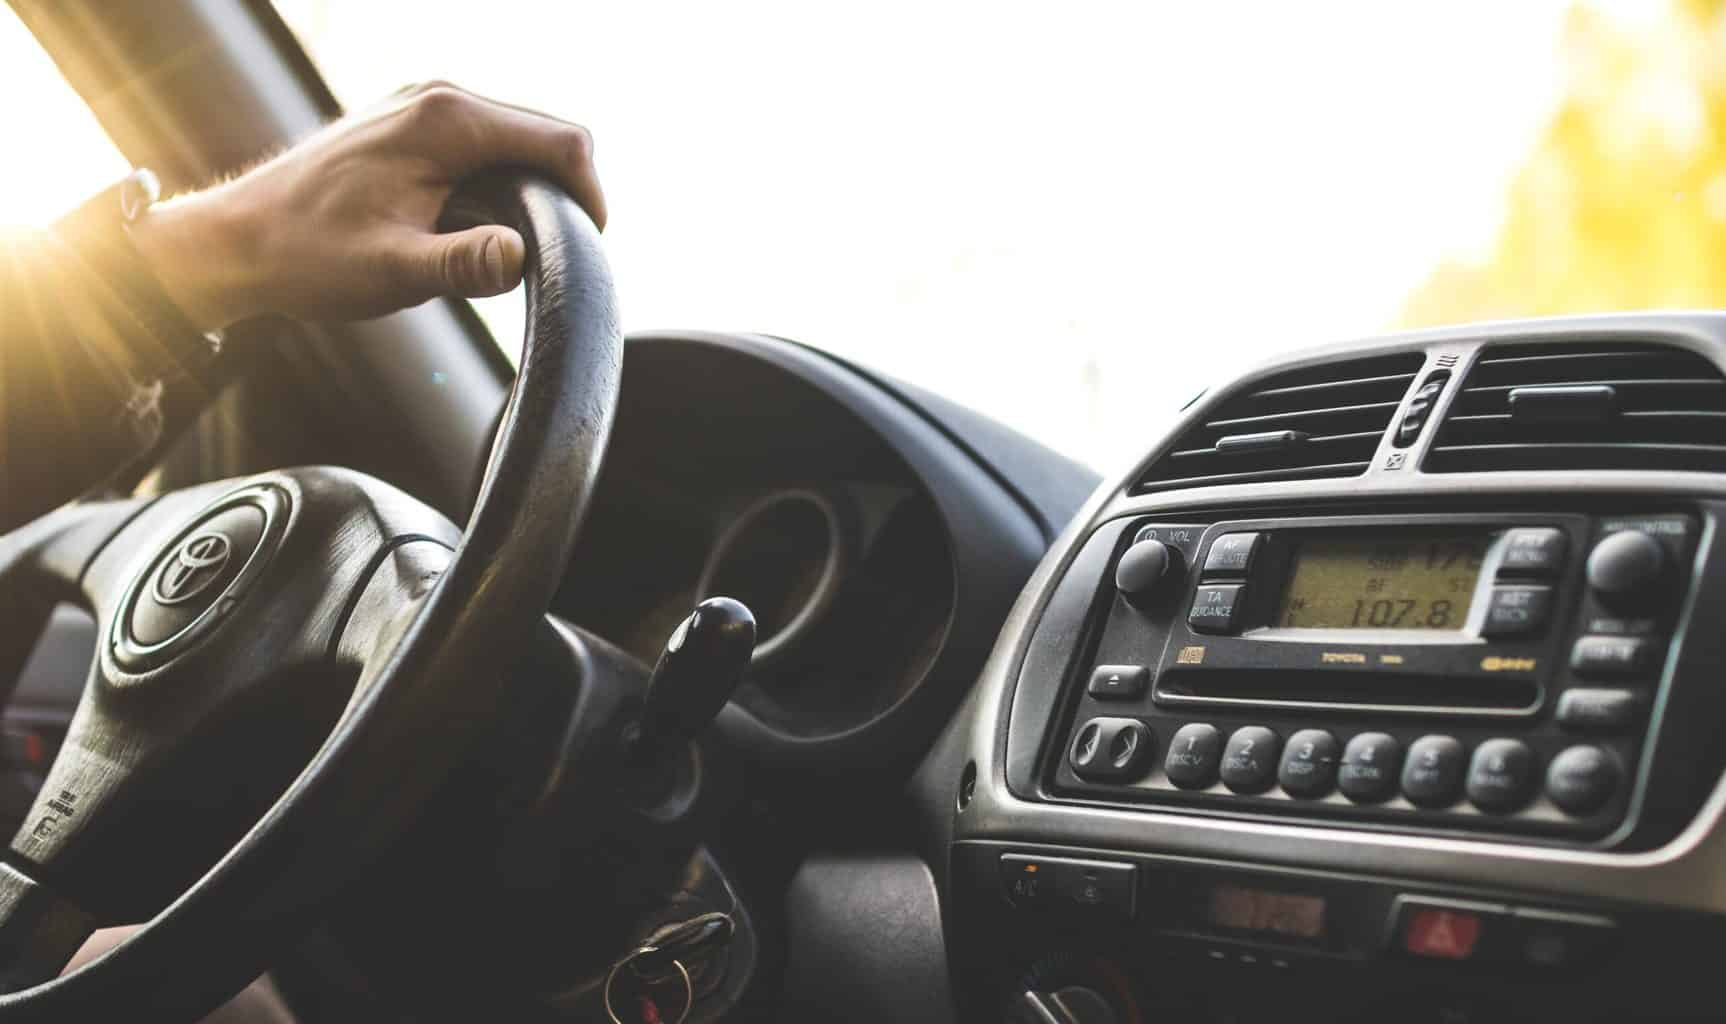 A shot inside a car with a steering wheel and a sound system